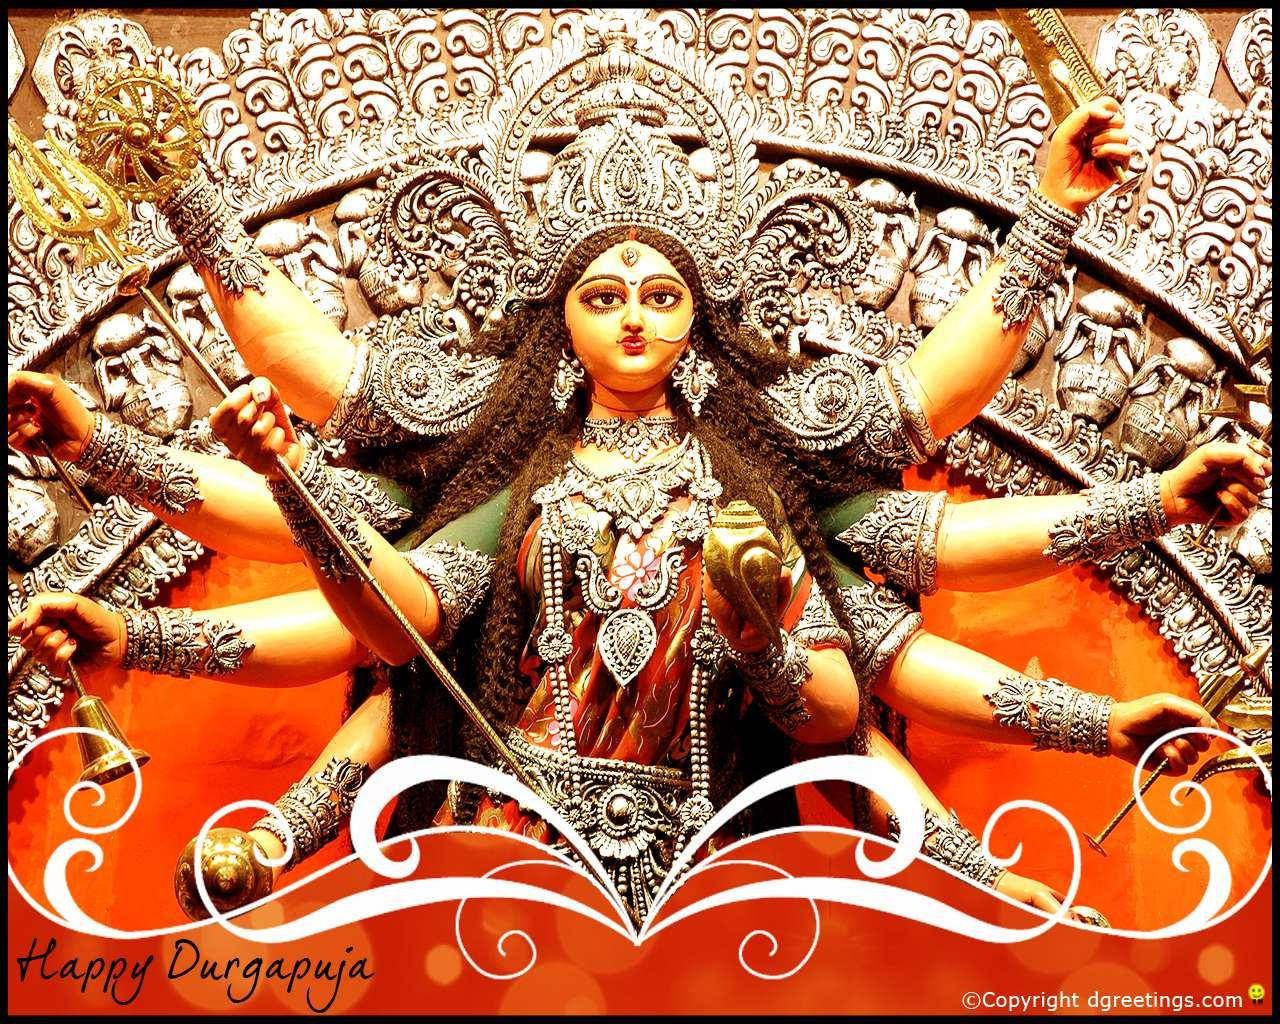 Download Wallpapers Backgrounds   Durga Puja Wallpapers Download 1280x1024